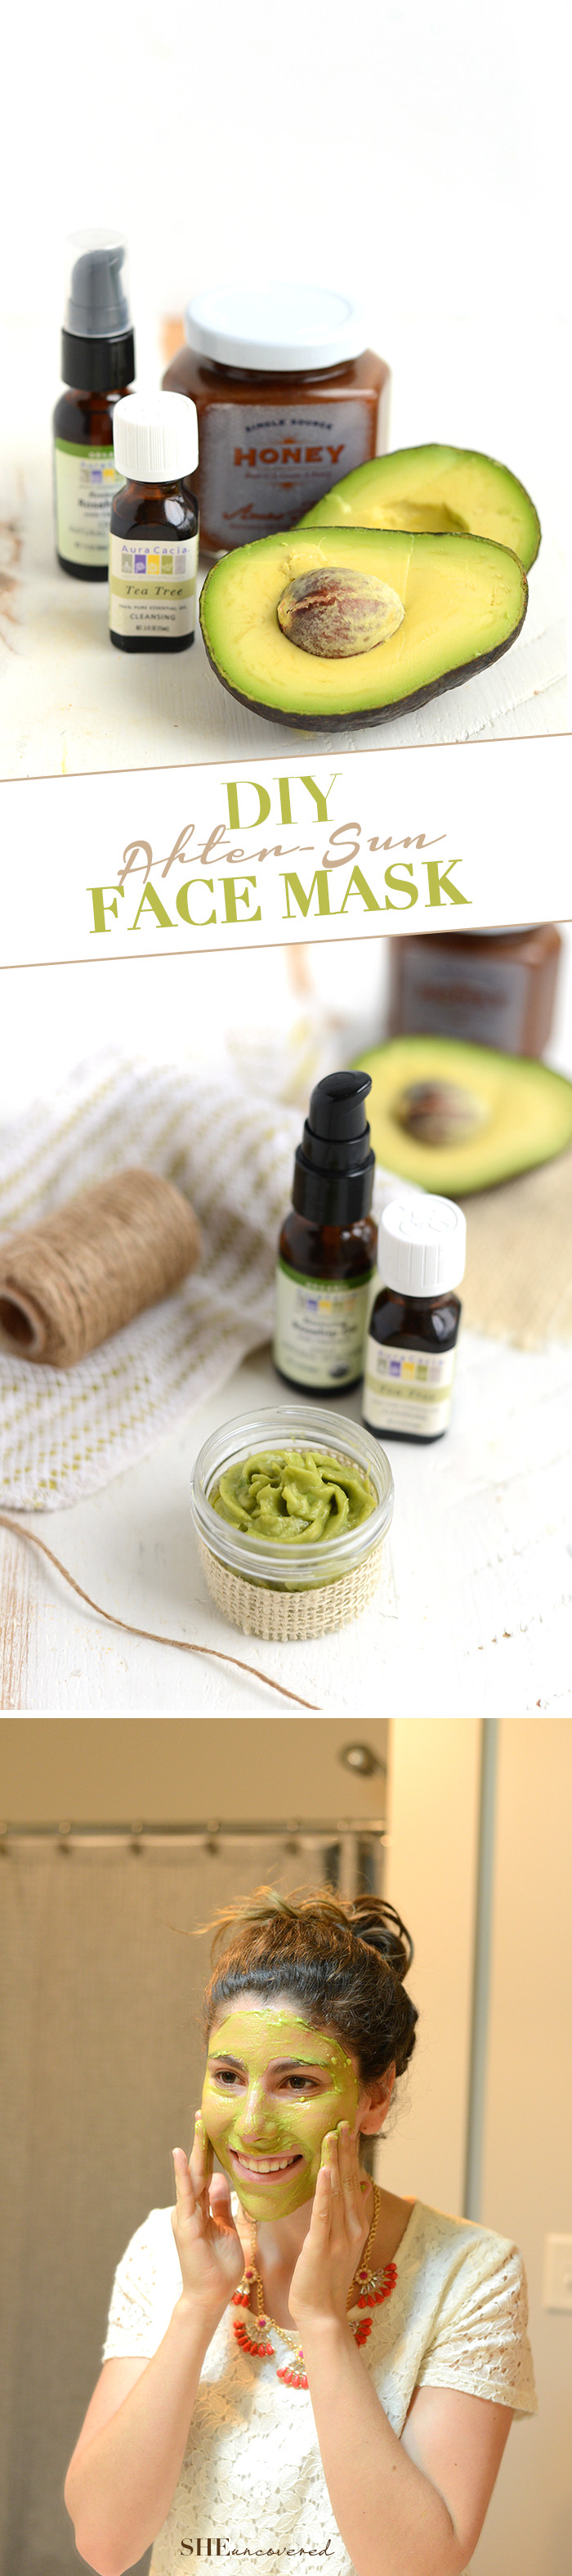 Best ideas about DIY Calming Face Mask . Save or Pin DIY After Sun Face Mask • She Uncovered Now.